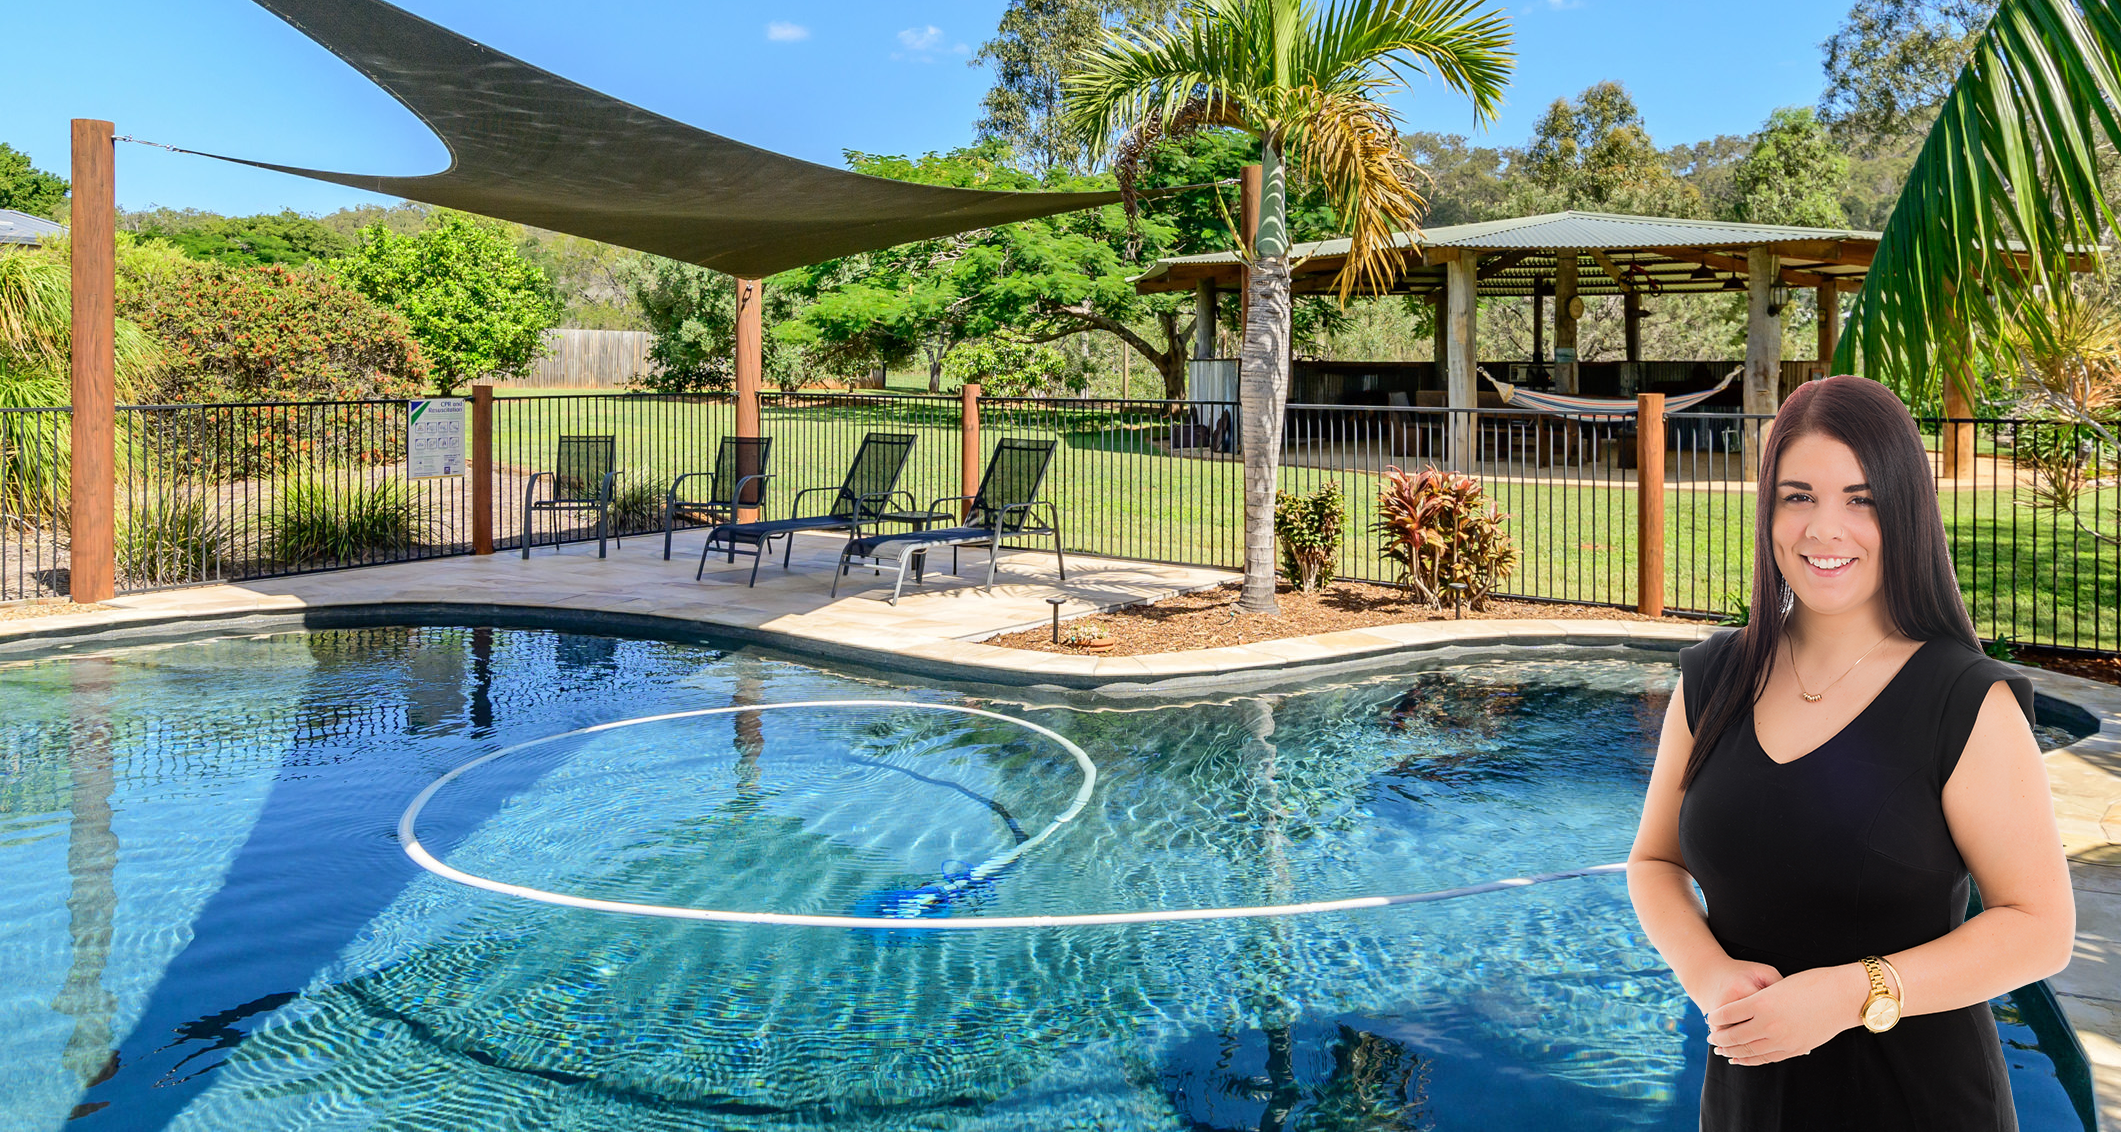 POOL COMPLIANCE – WHAT ARE MY RESPONSIBILITIES AS A LANDLORD?